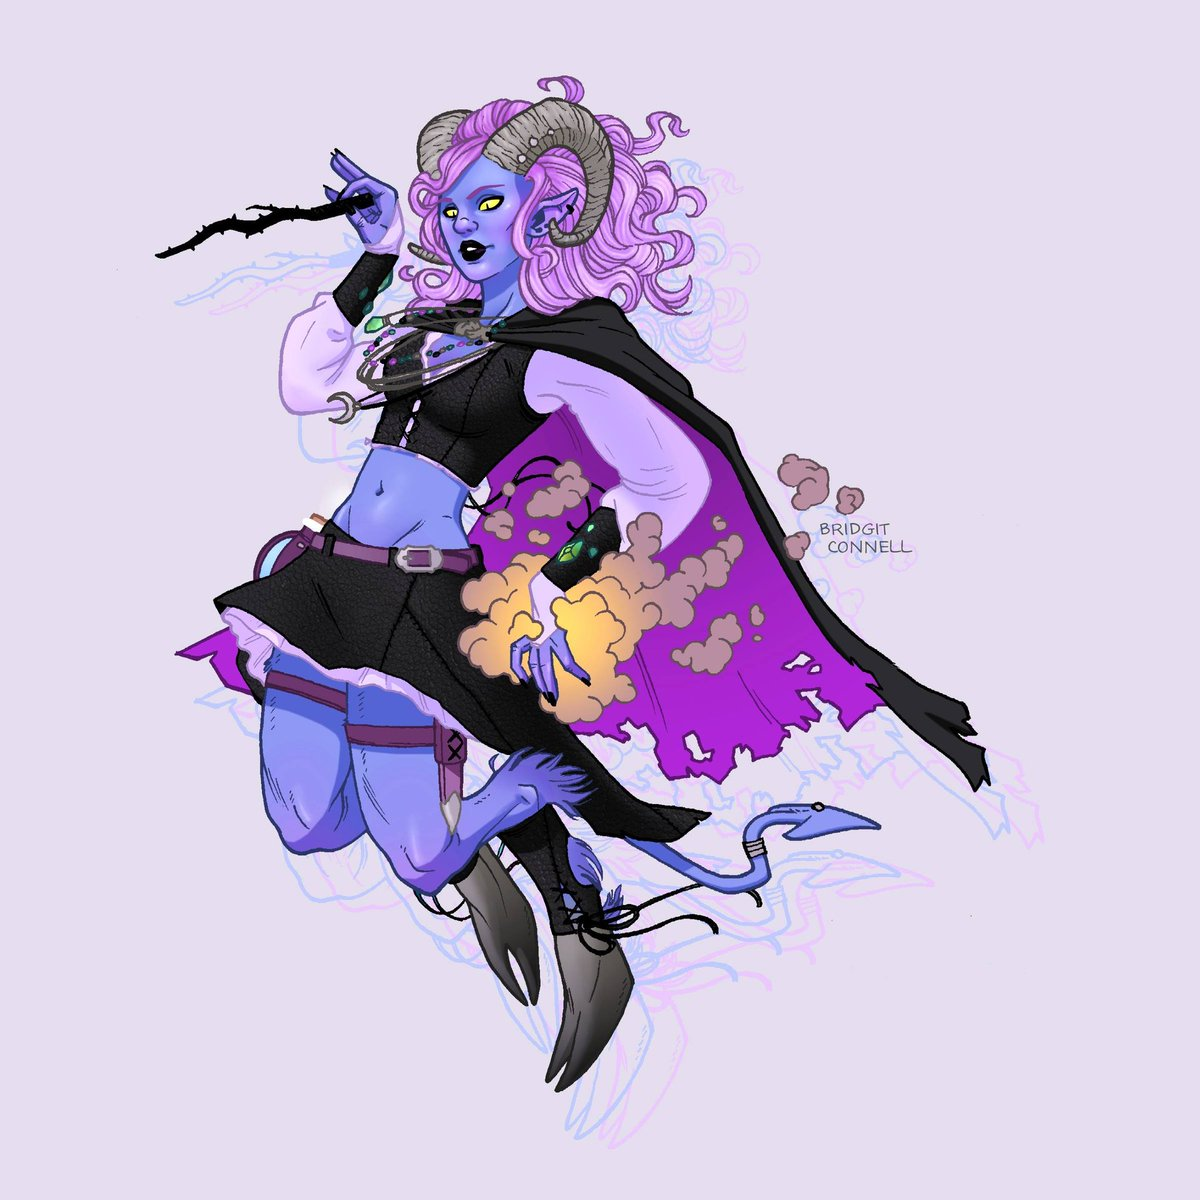 Нð«ð¢ððð¢ð Н'𝐨𝐧𝐧𝐞𝐥𝐥 On Twitter Megandeputy S Tiefling Warlock Perchta Part Of Our Group The Blue Moon Crew So Stoked To Continue Our Campaign Tiefling Warlock Perchta Dungeonsanddragons Demonkin Wizardsofthecoast Https T Co Arguably better spell options for a warlock. tiefling warlock perchta